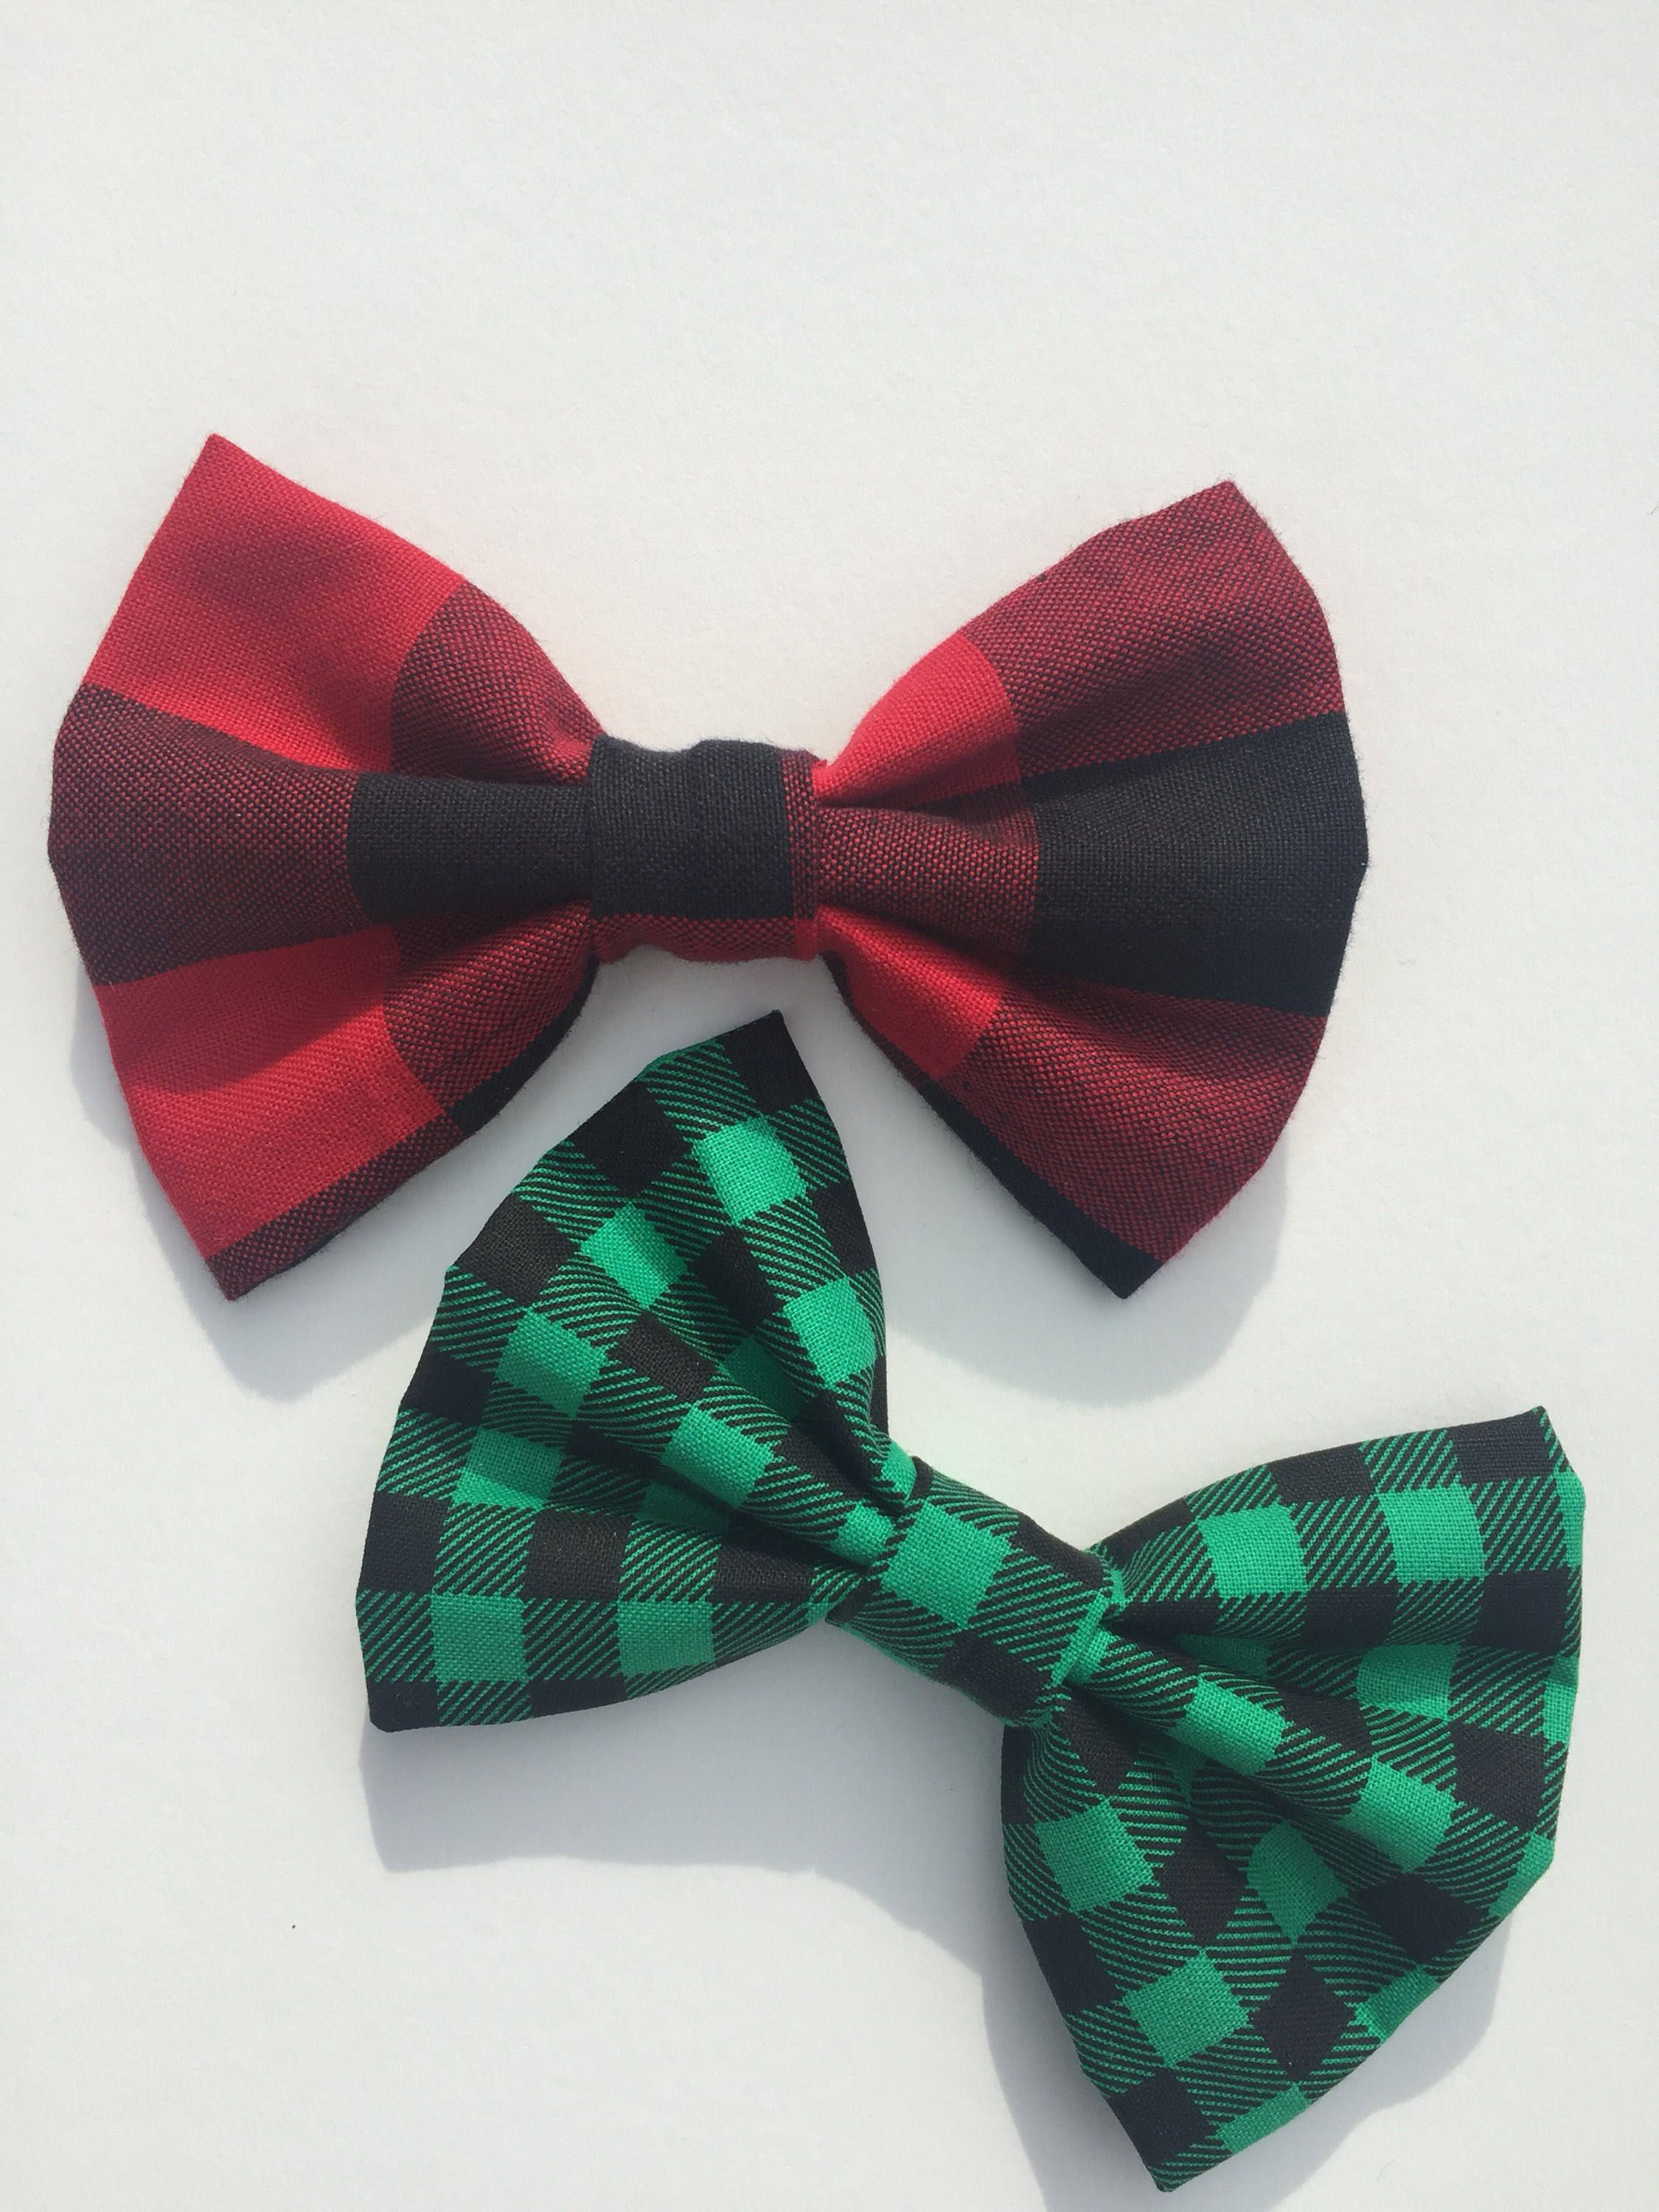 d105c9b264b Kid's Christmas Clip On Bow Ties, Holiday Hair Bows, Red & green plaid,  Mens Bow Tie, Toddler Bows, Buffalo Plaid, Girls bows by PolkaDotThreads on  Etsy